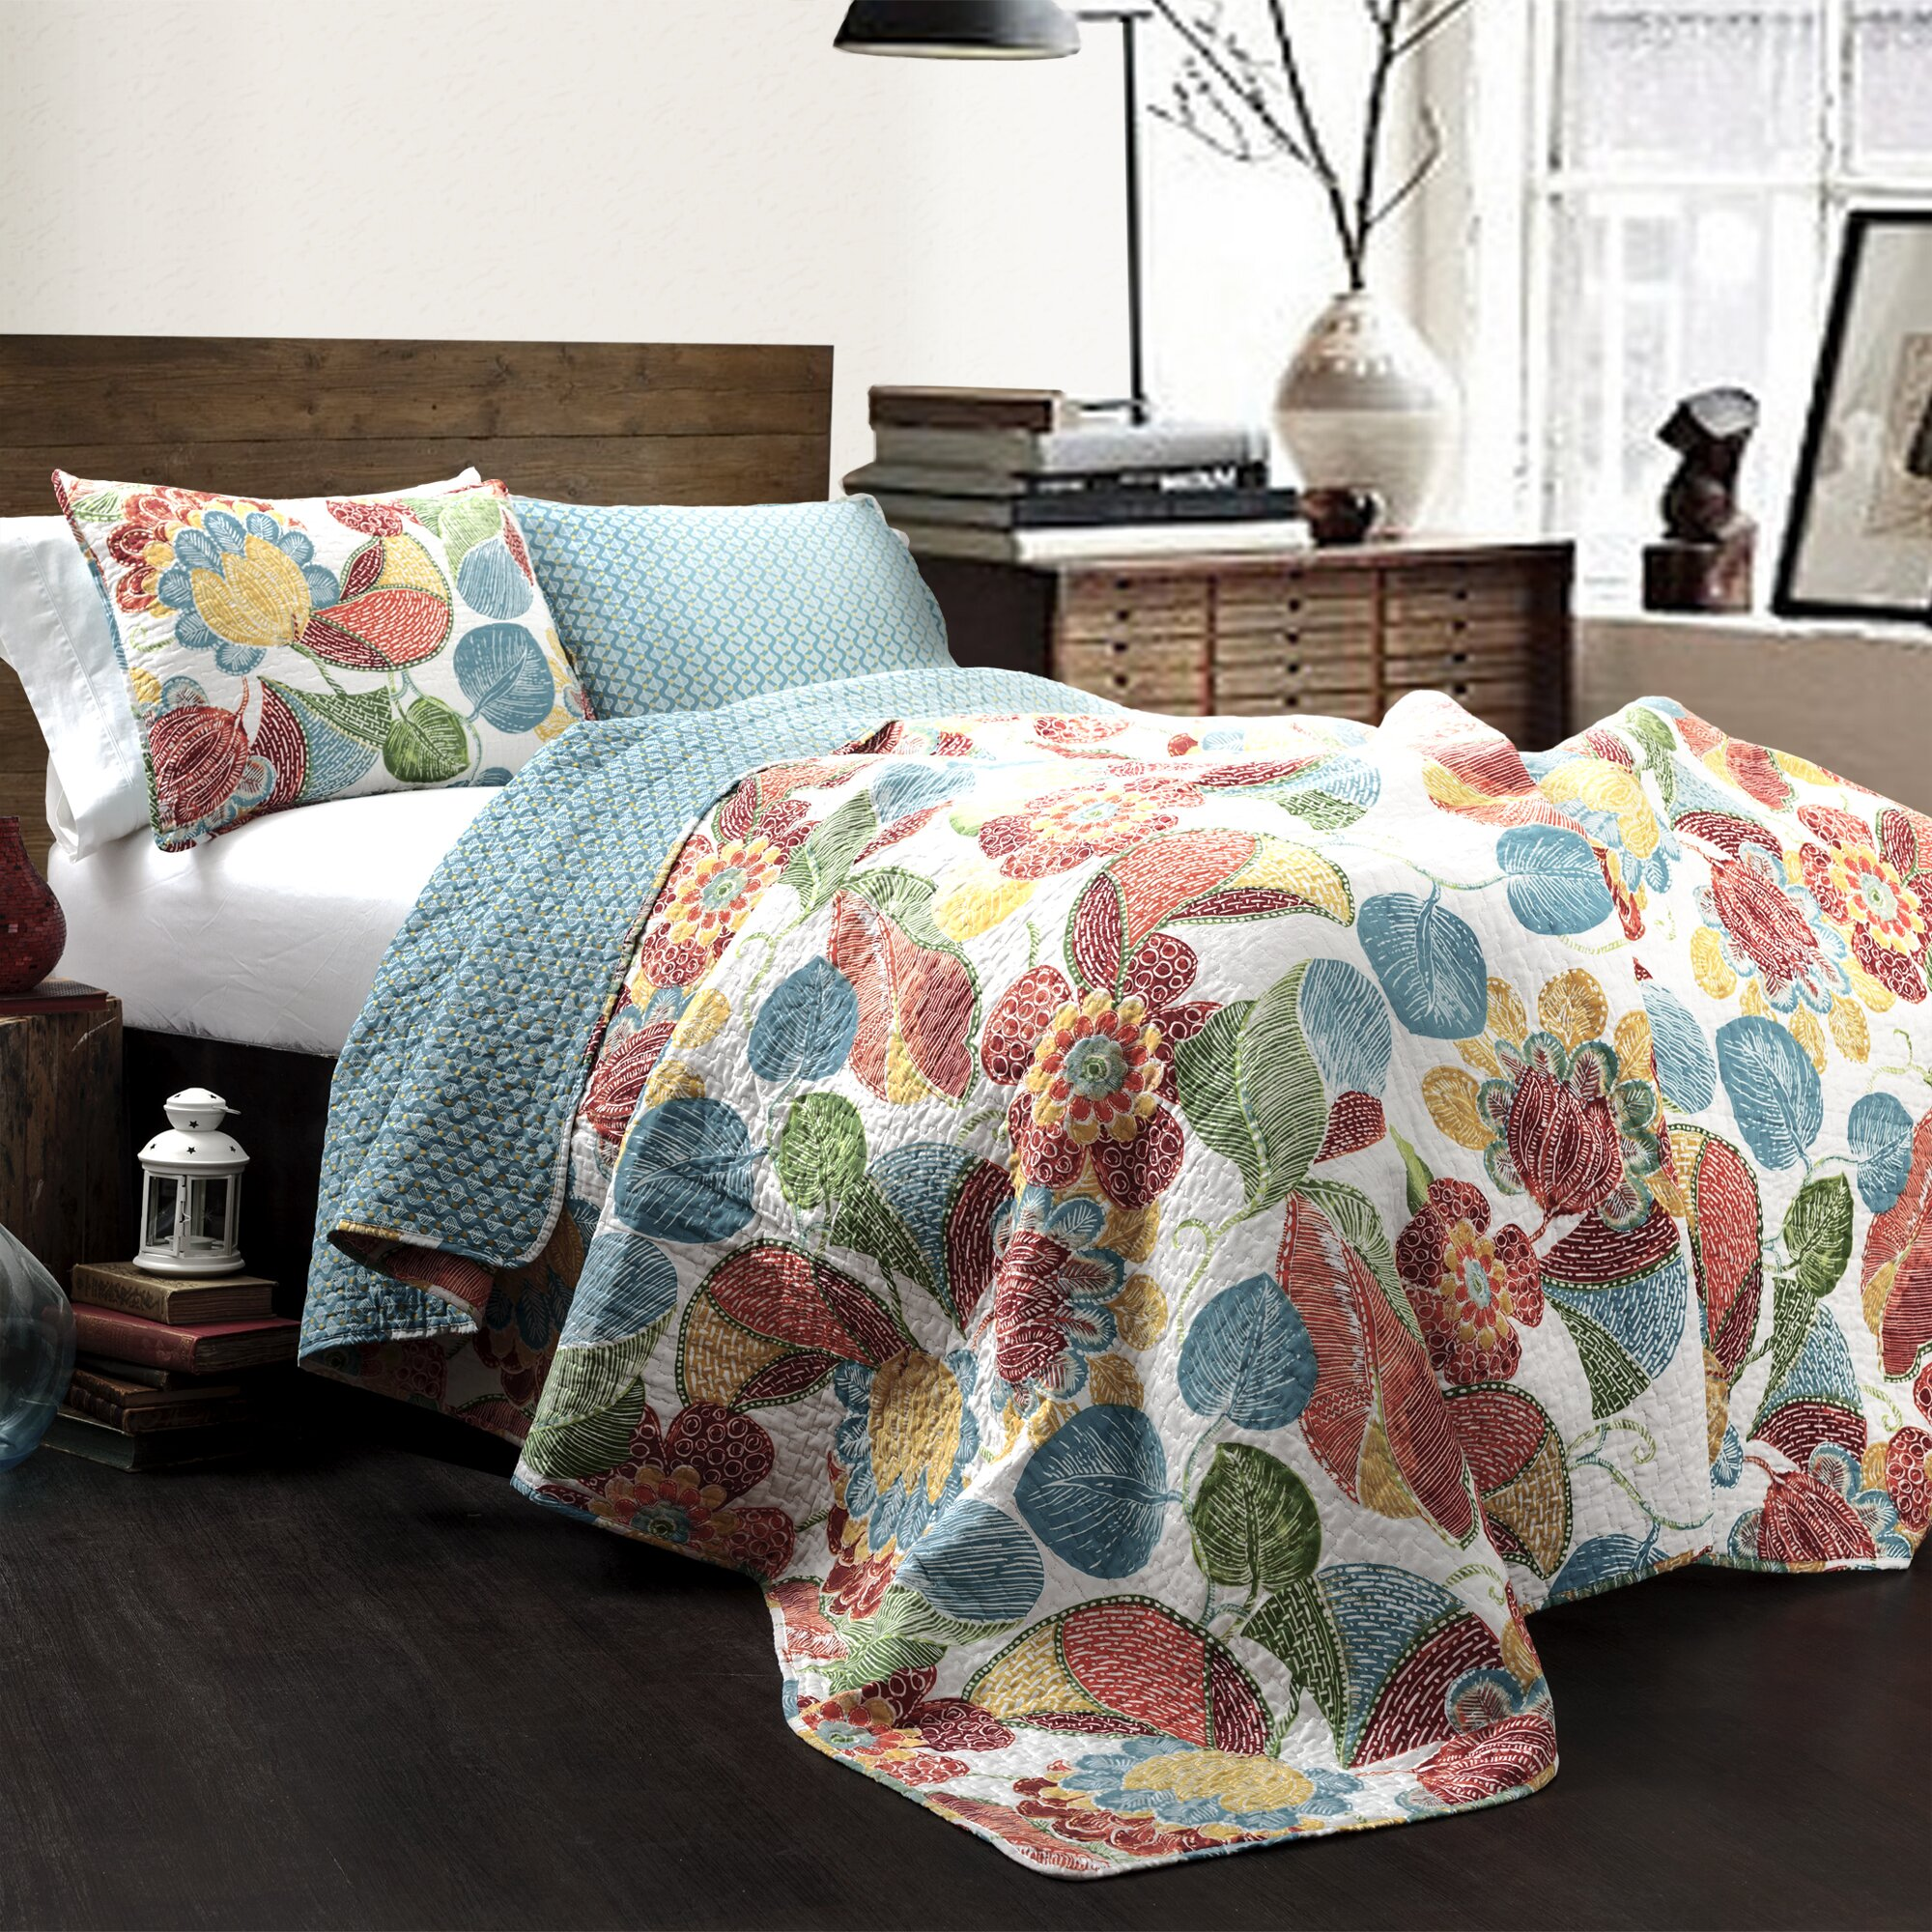 Layla 3 Piece Reversible Coverlet Set by Lush Decor